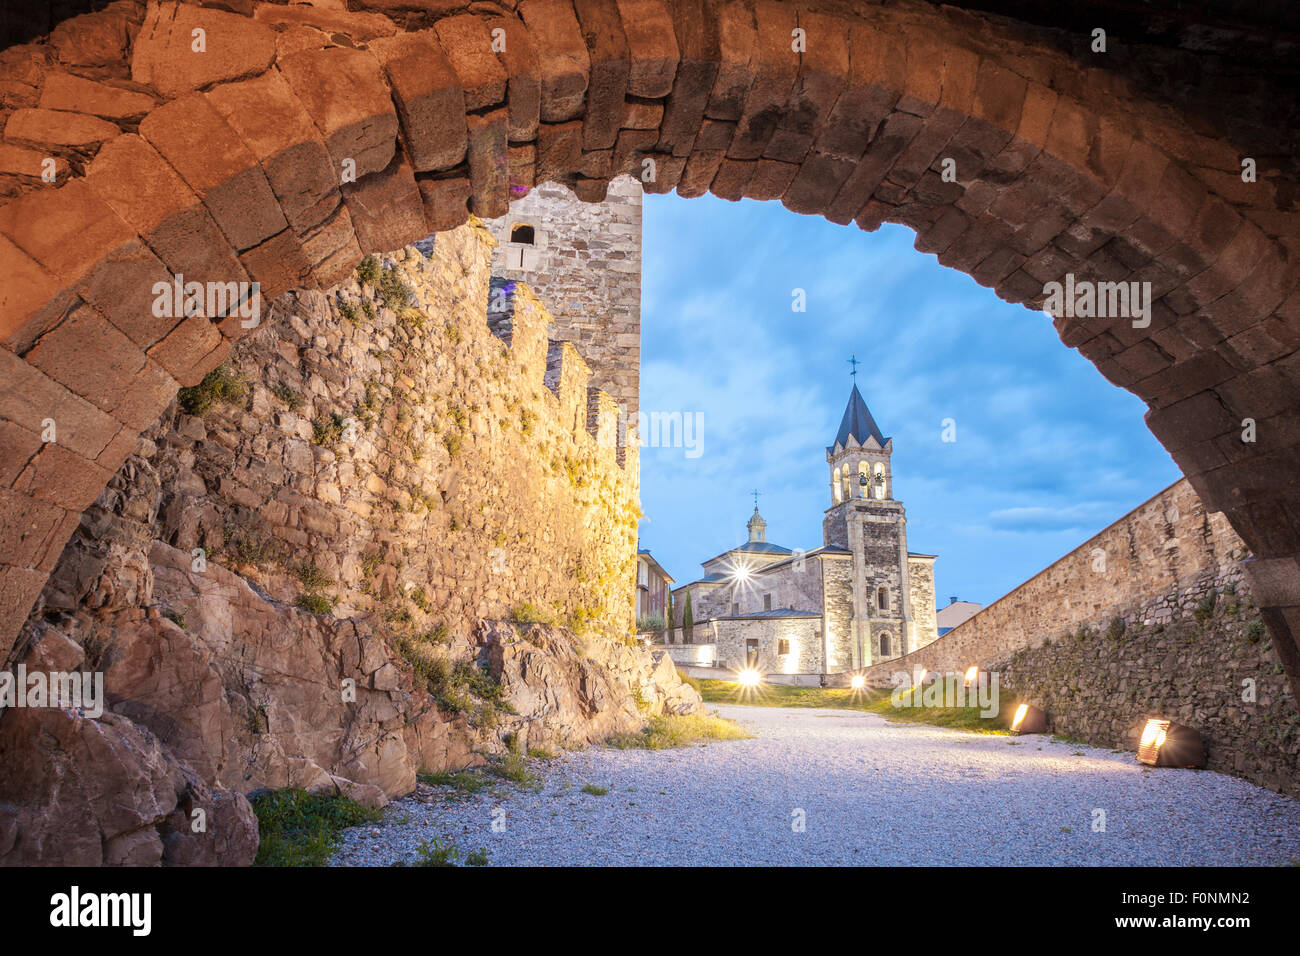 View of San Andres church from Los Templarios Castle in Ponferrada, Way of St. James, Leon, Spain - Stock Image